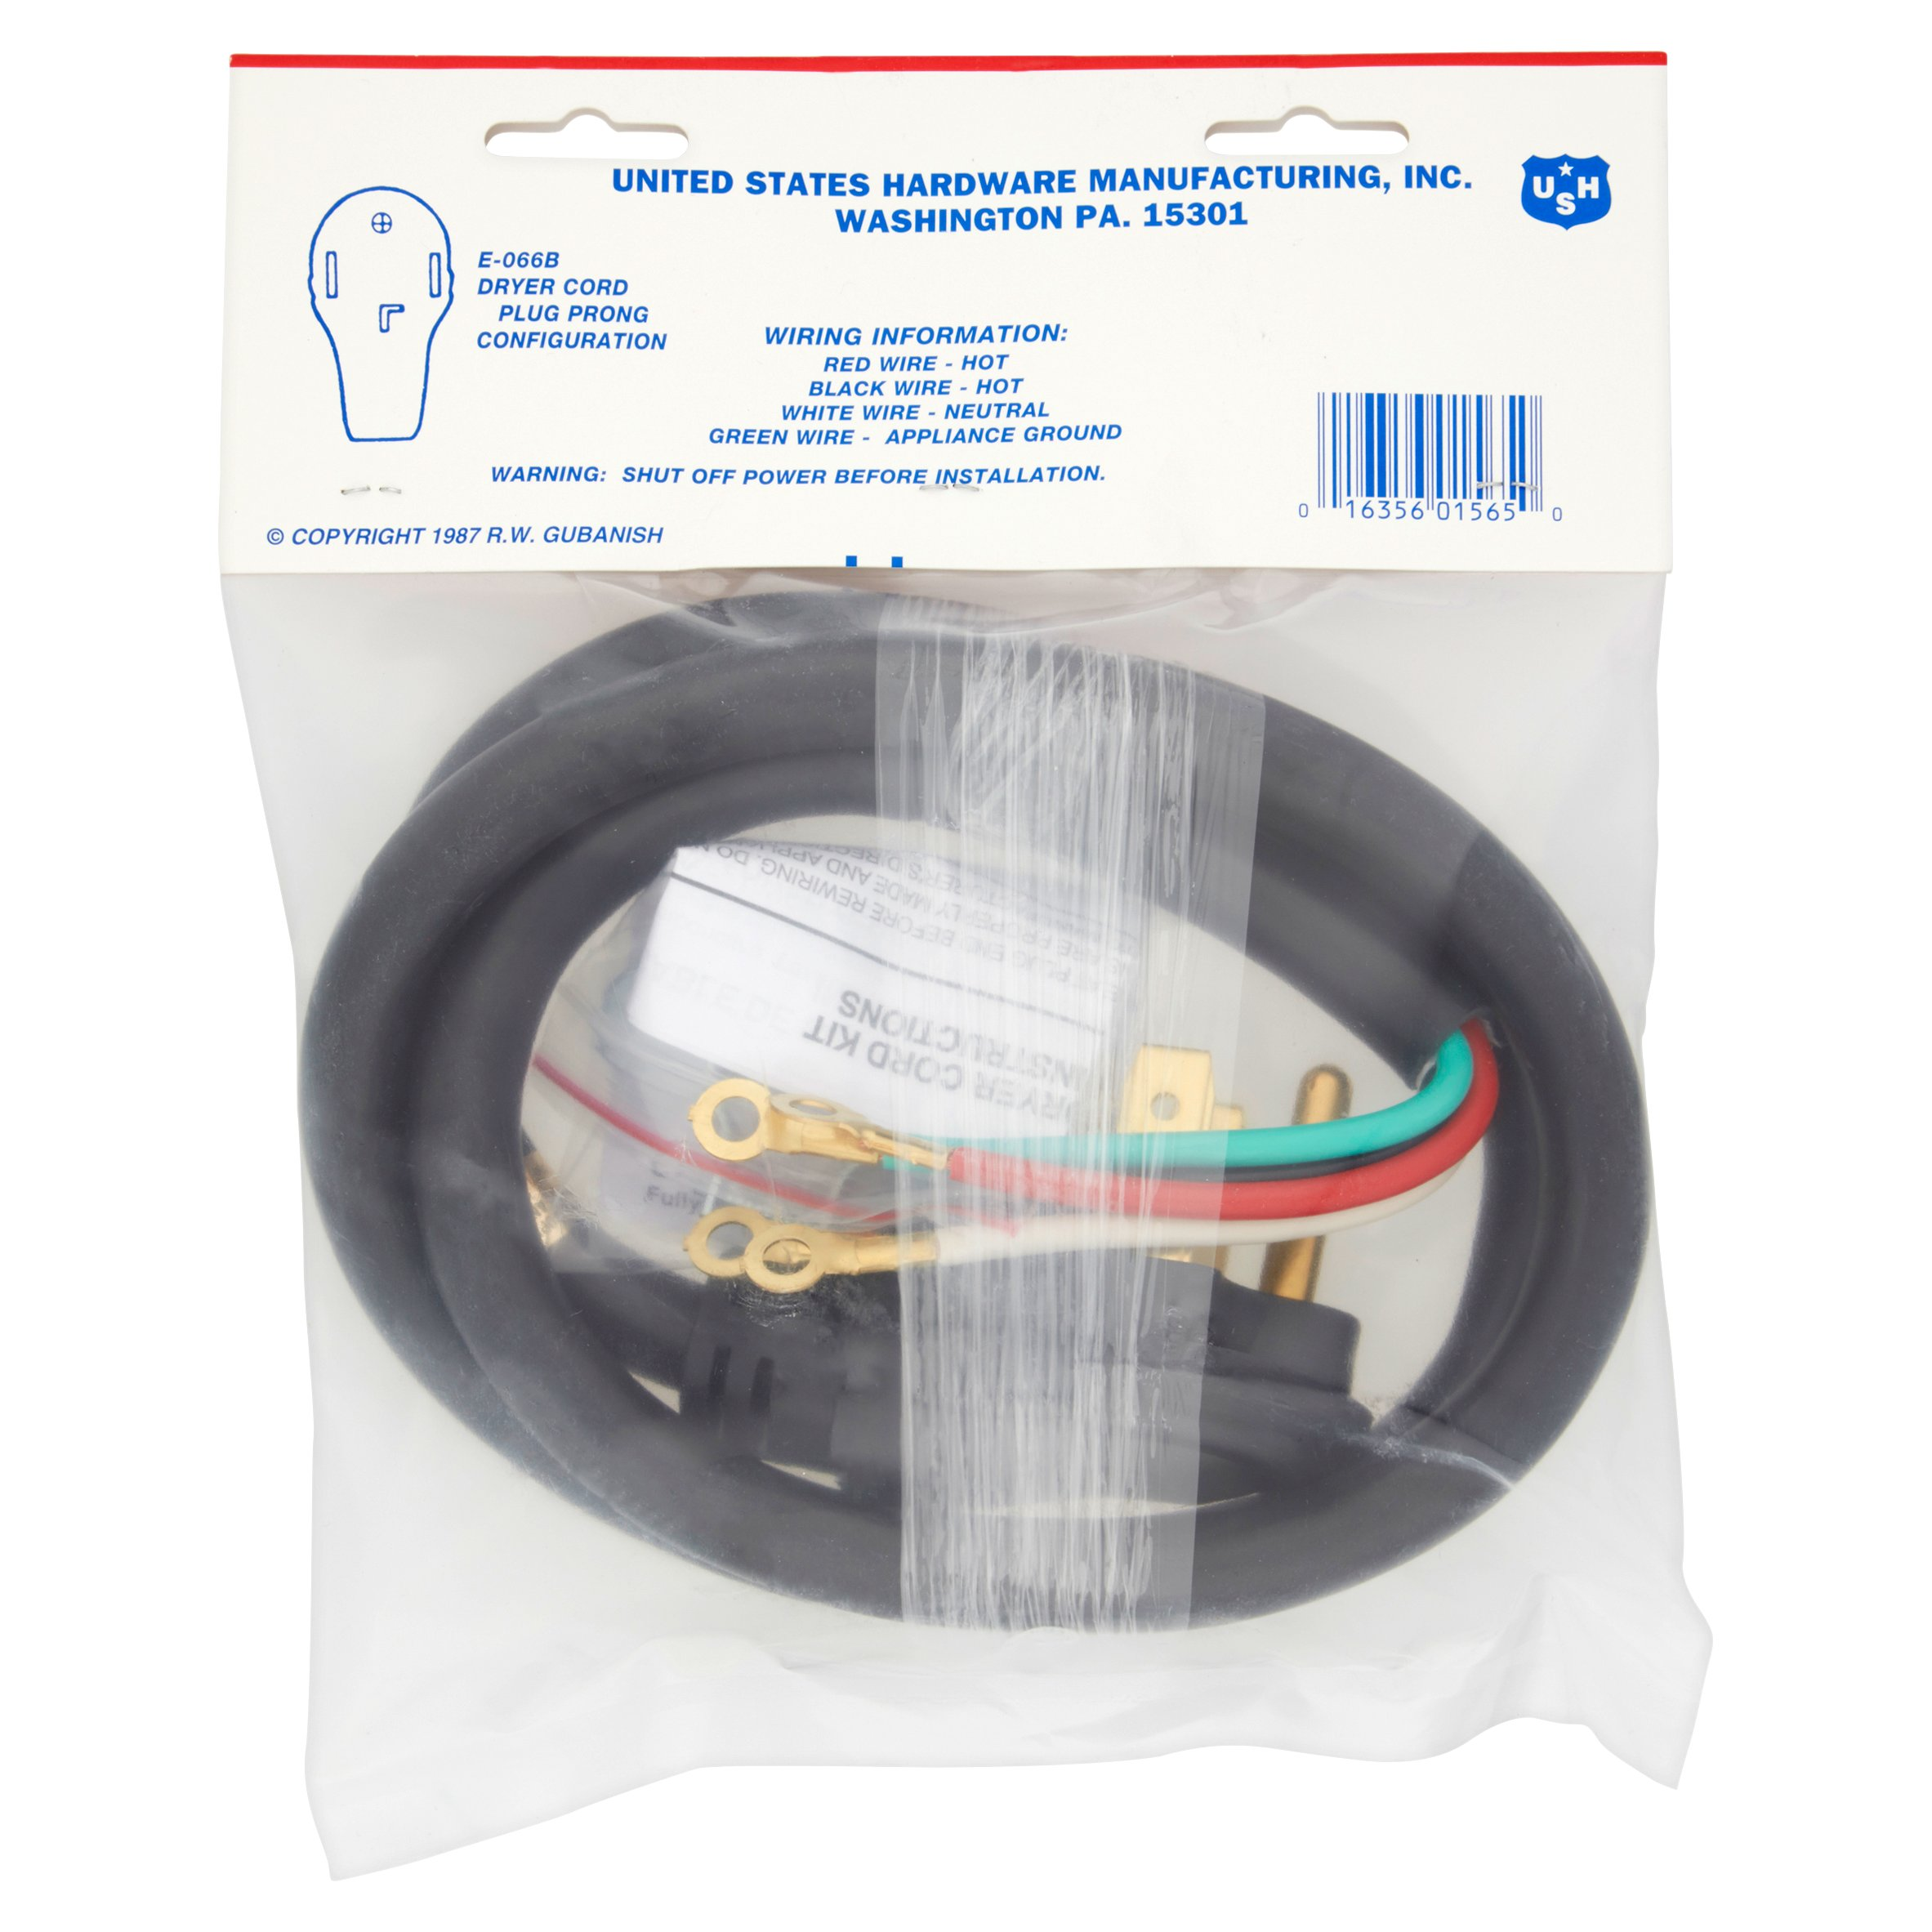 USH 4ft 30 Amp 125/250 V Mobile Home Dryer Cord - Walmart.com